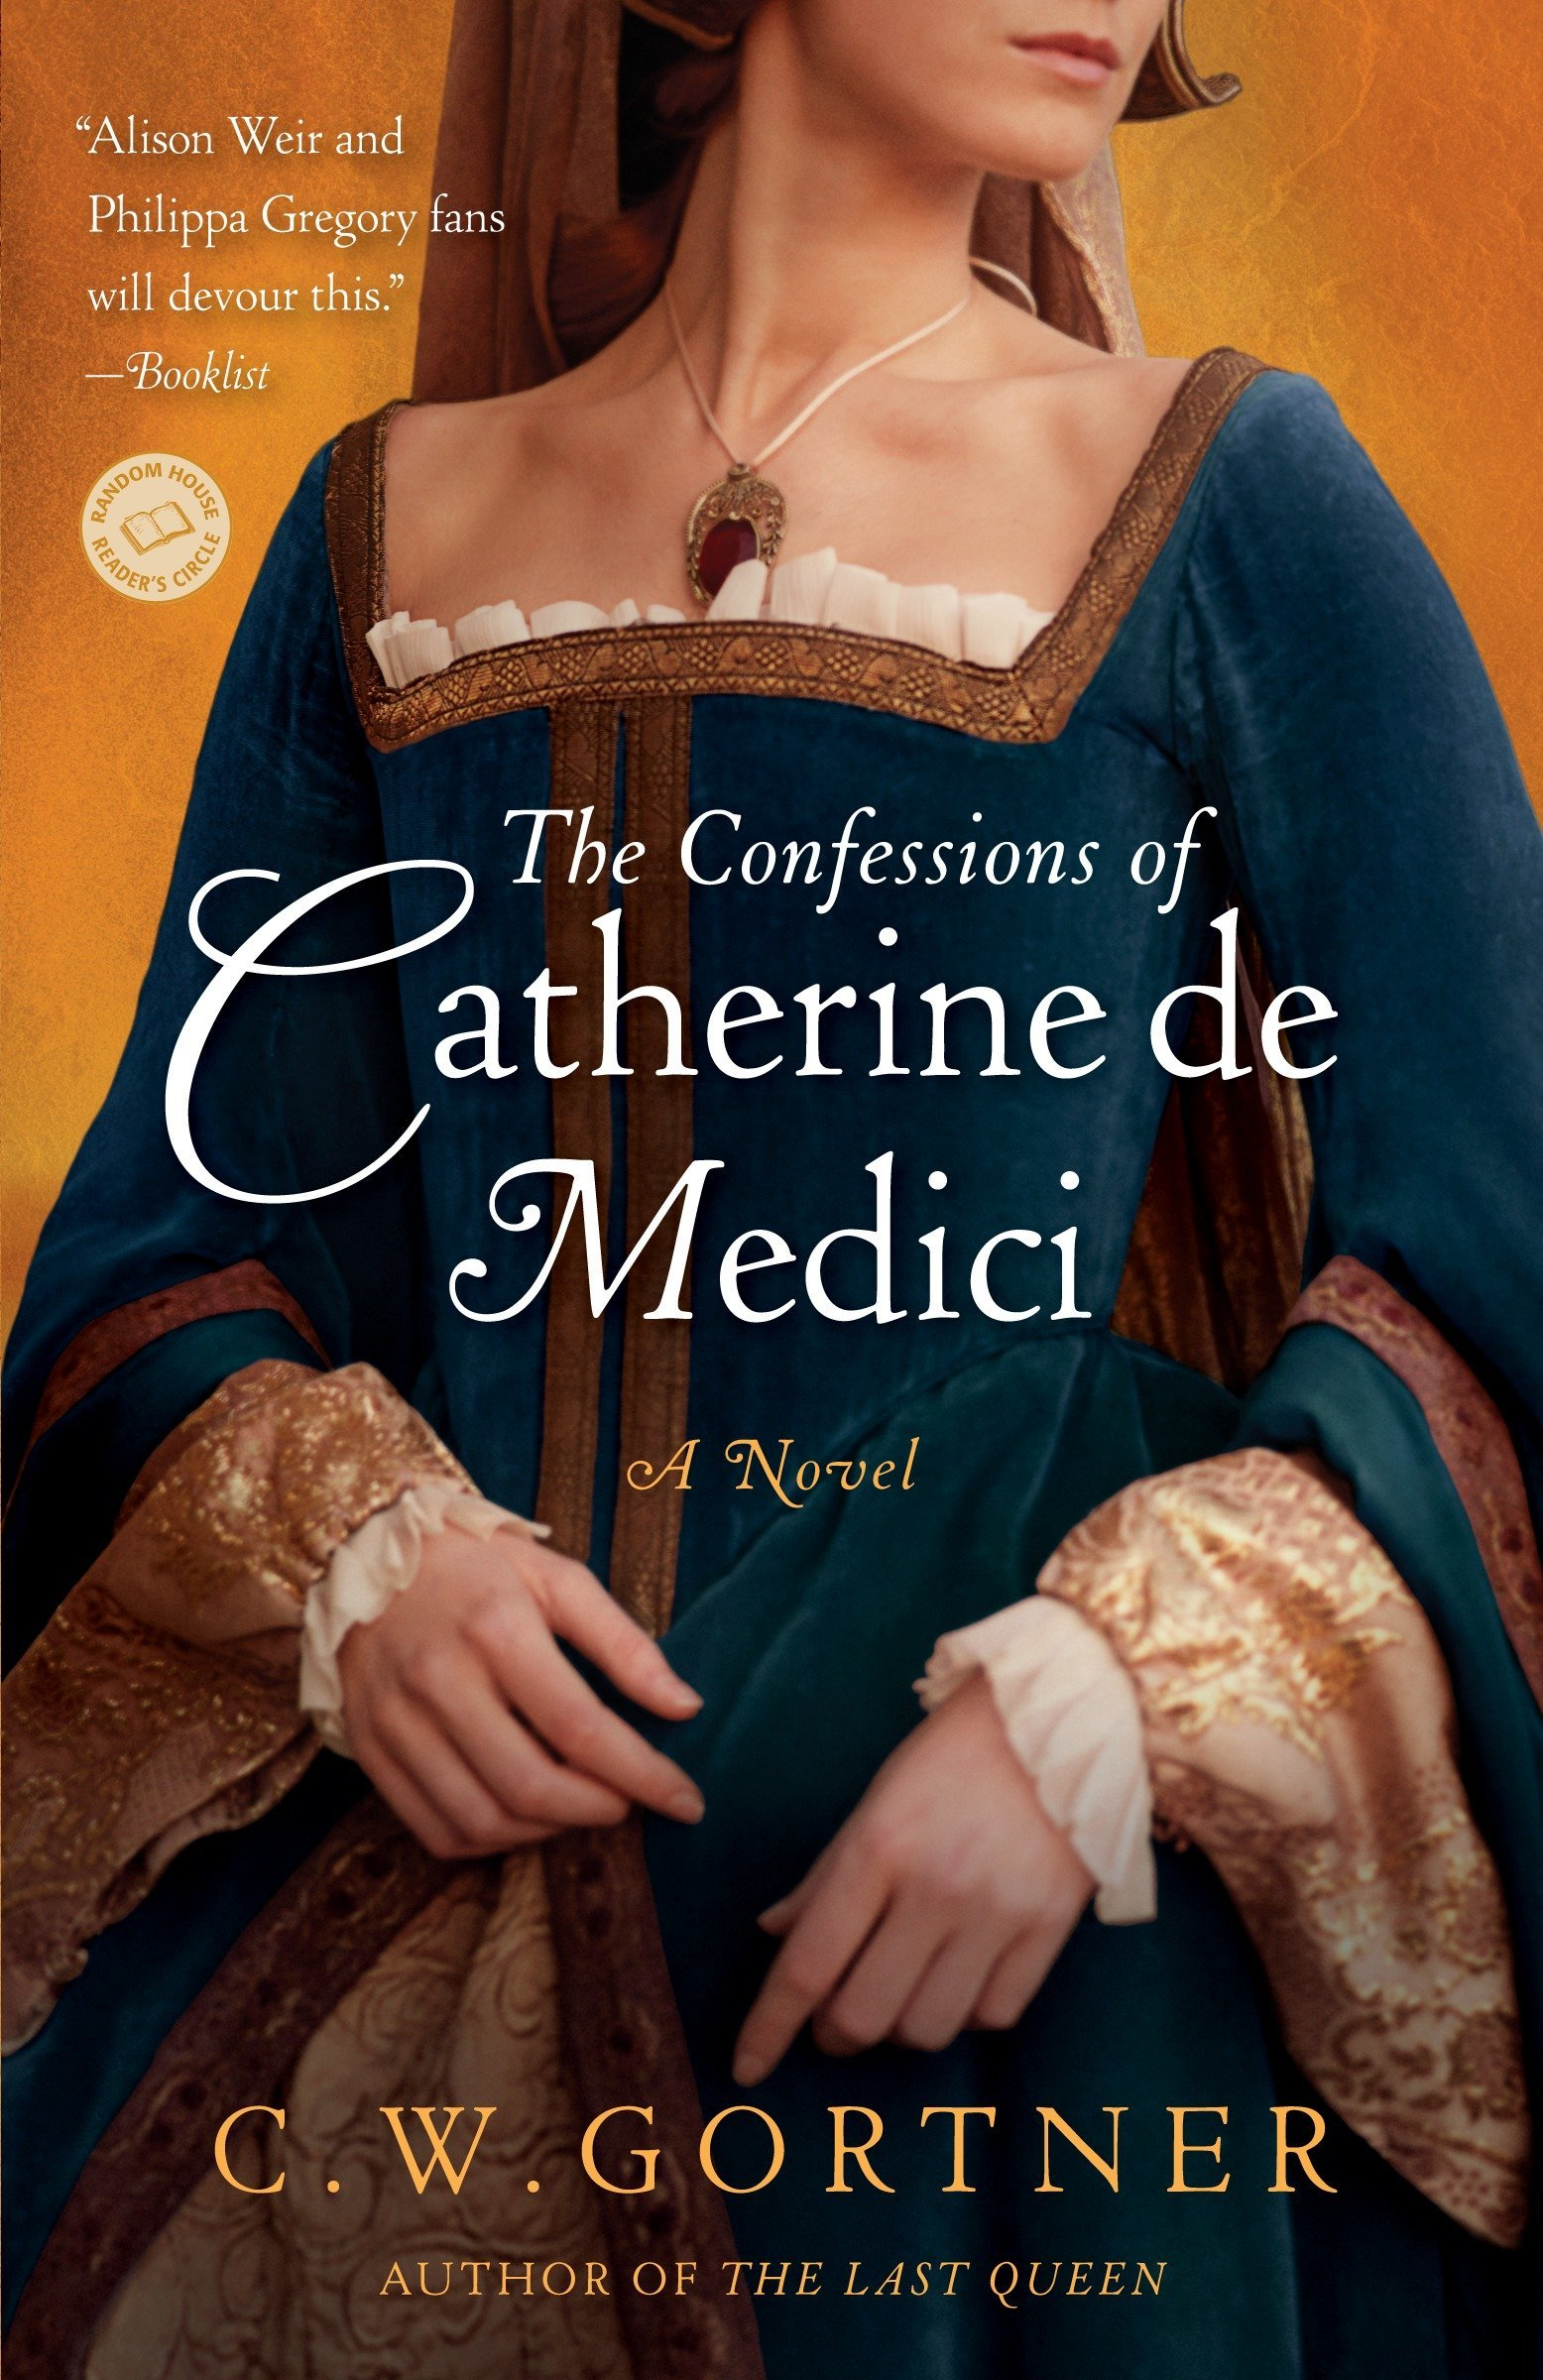 Download The Confessions of Catherine de Medici: A Novel pdf